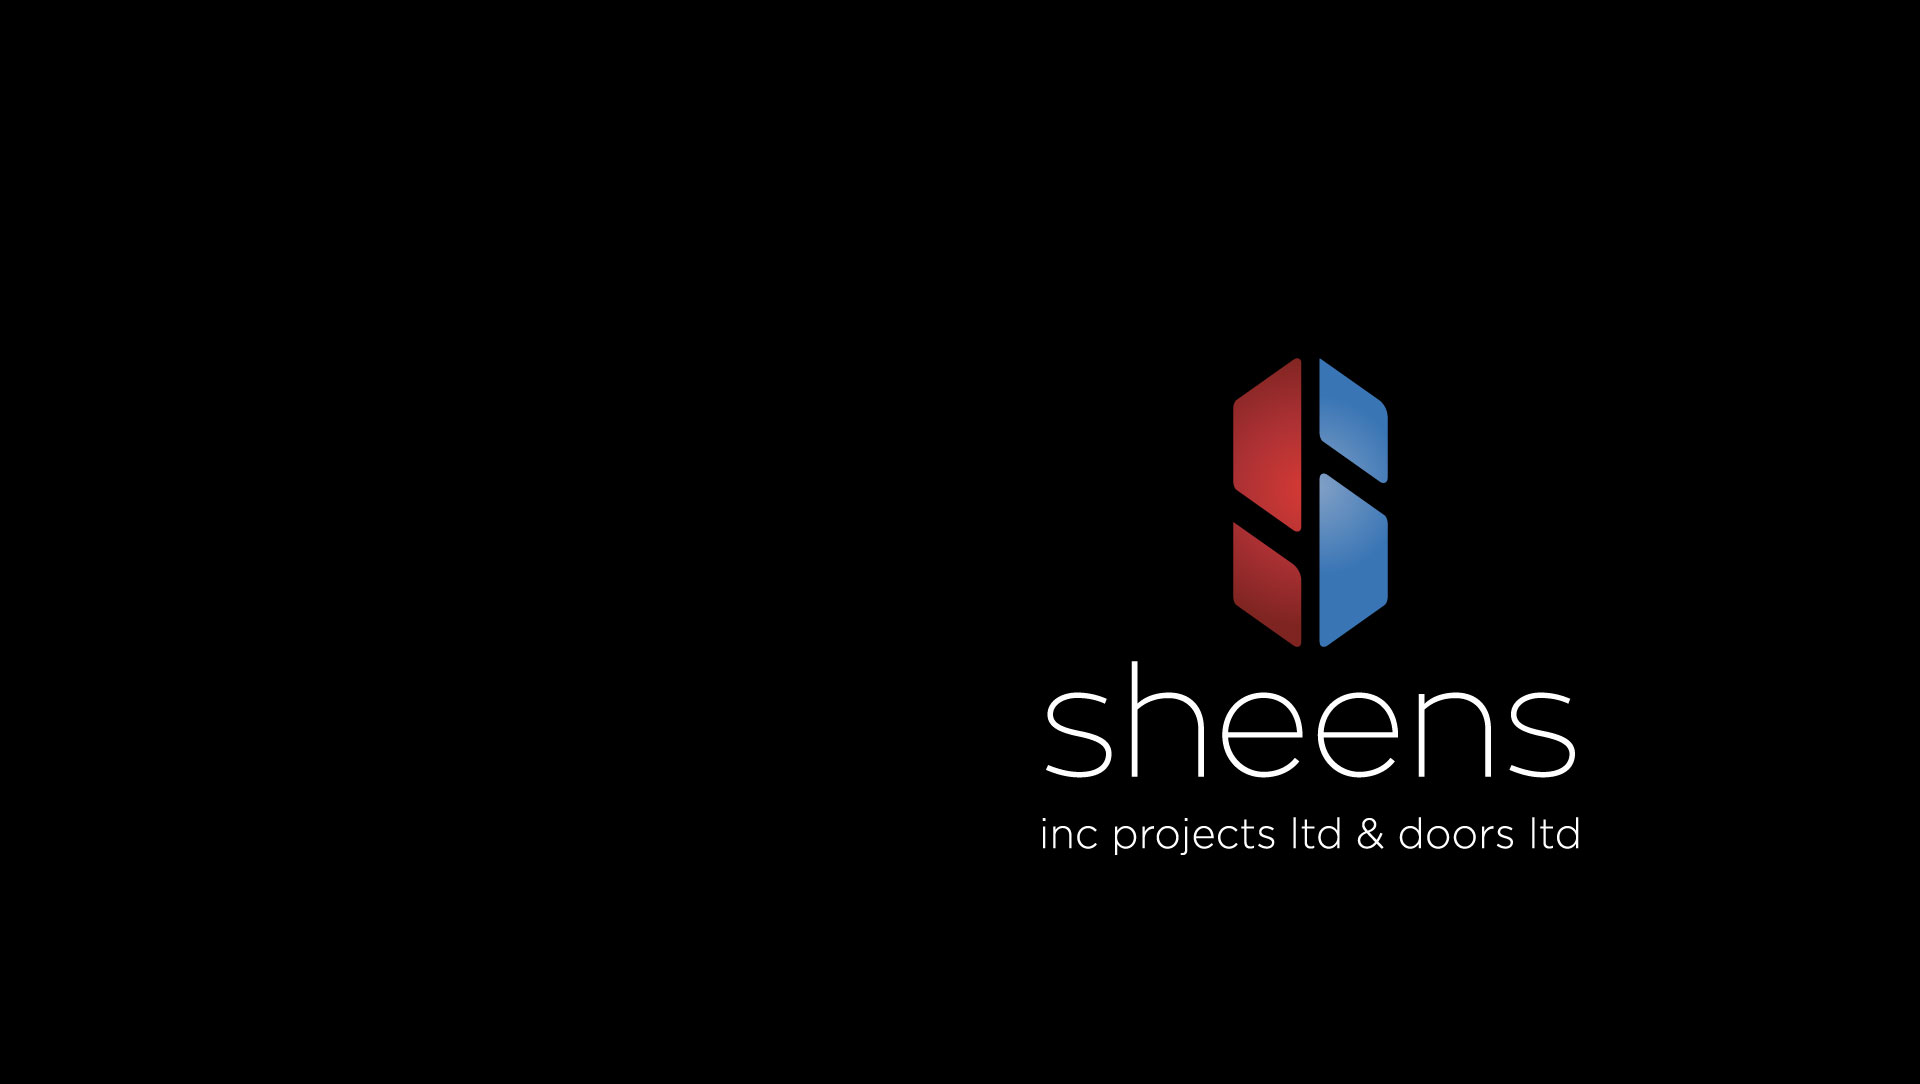 Sheens logo on black background